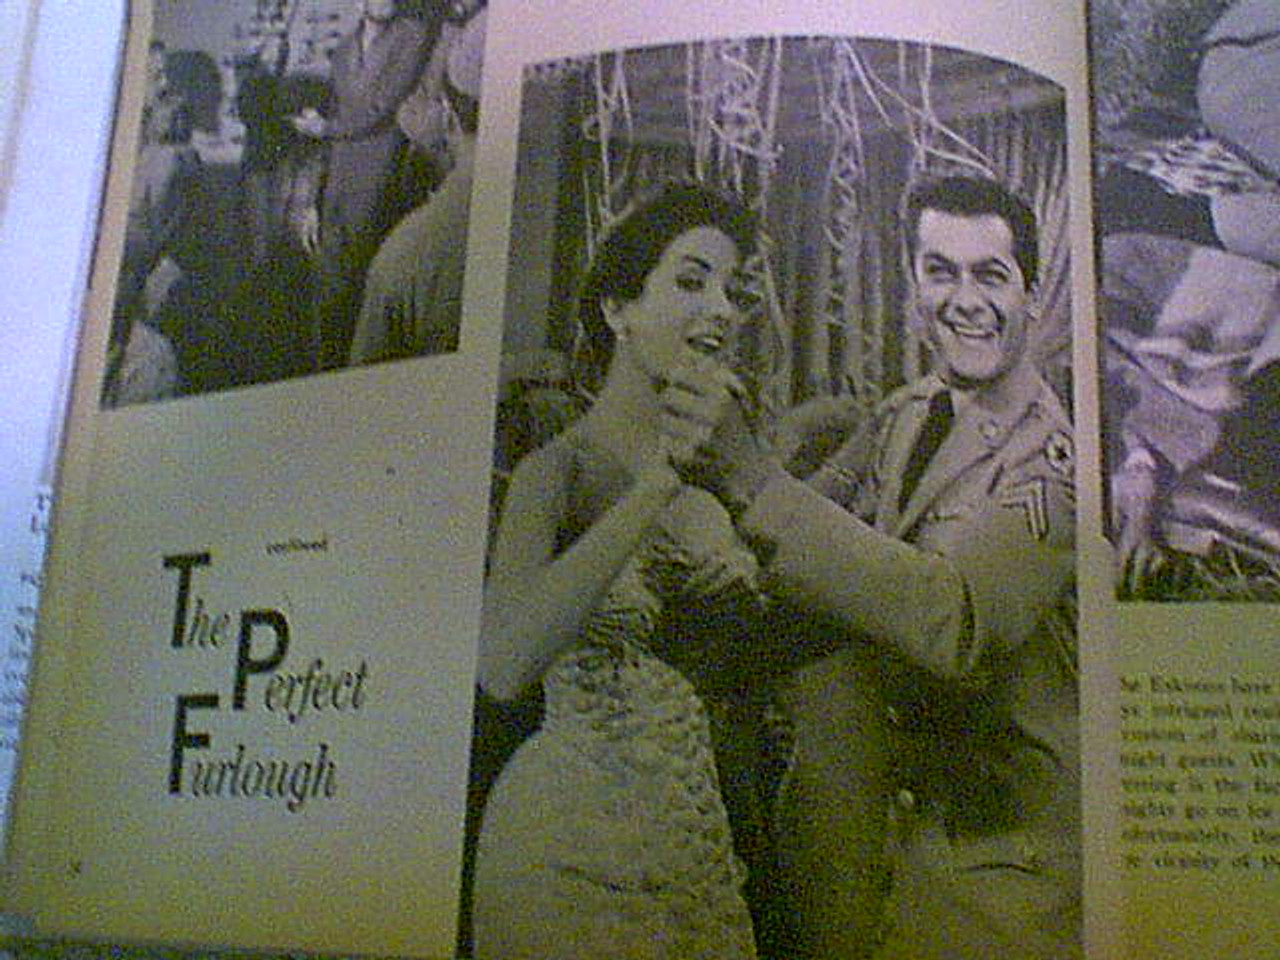 Curtis, Tony and Janet Leigh 1959 Screen Stories Magazine Signed Autograph Color Cover Photo